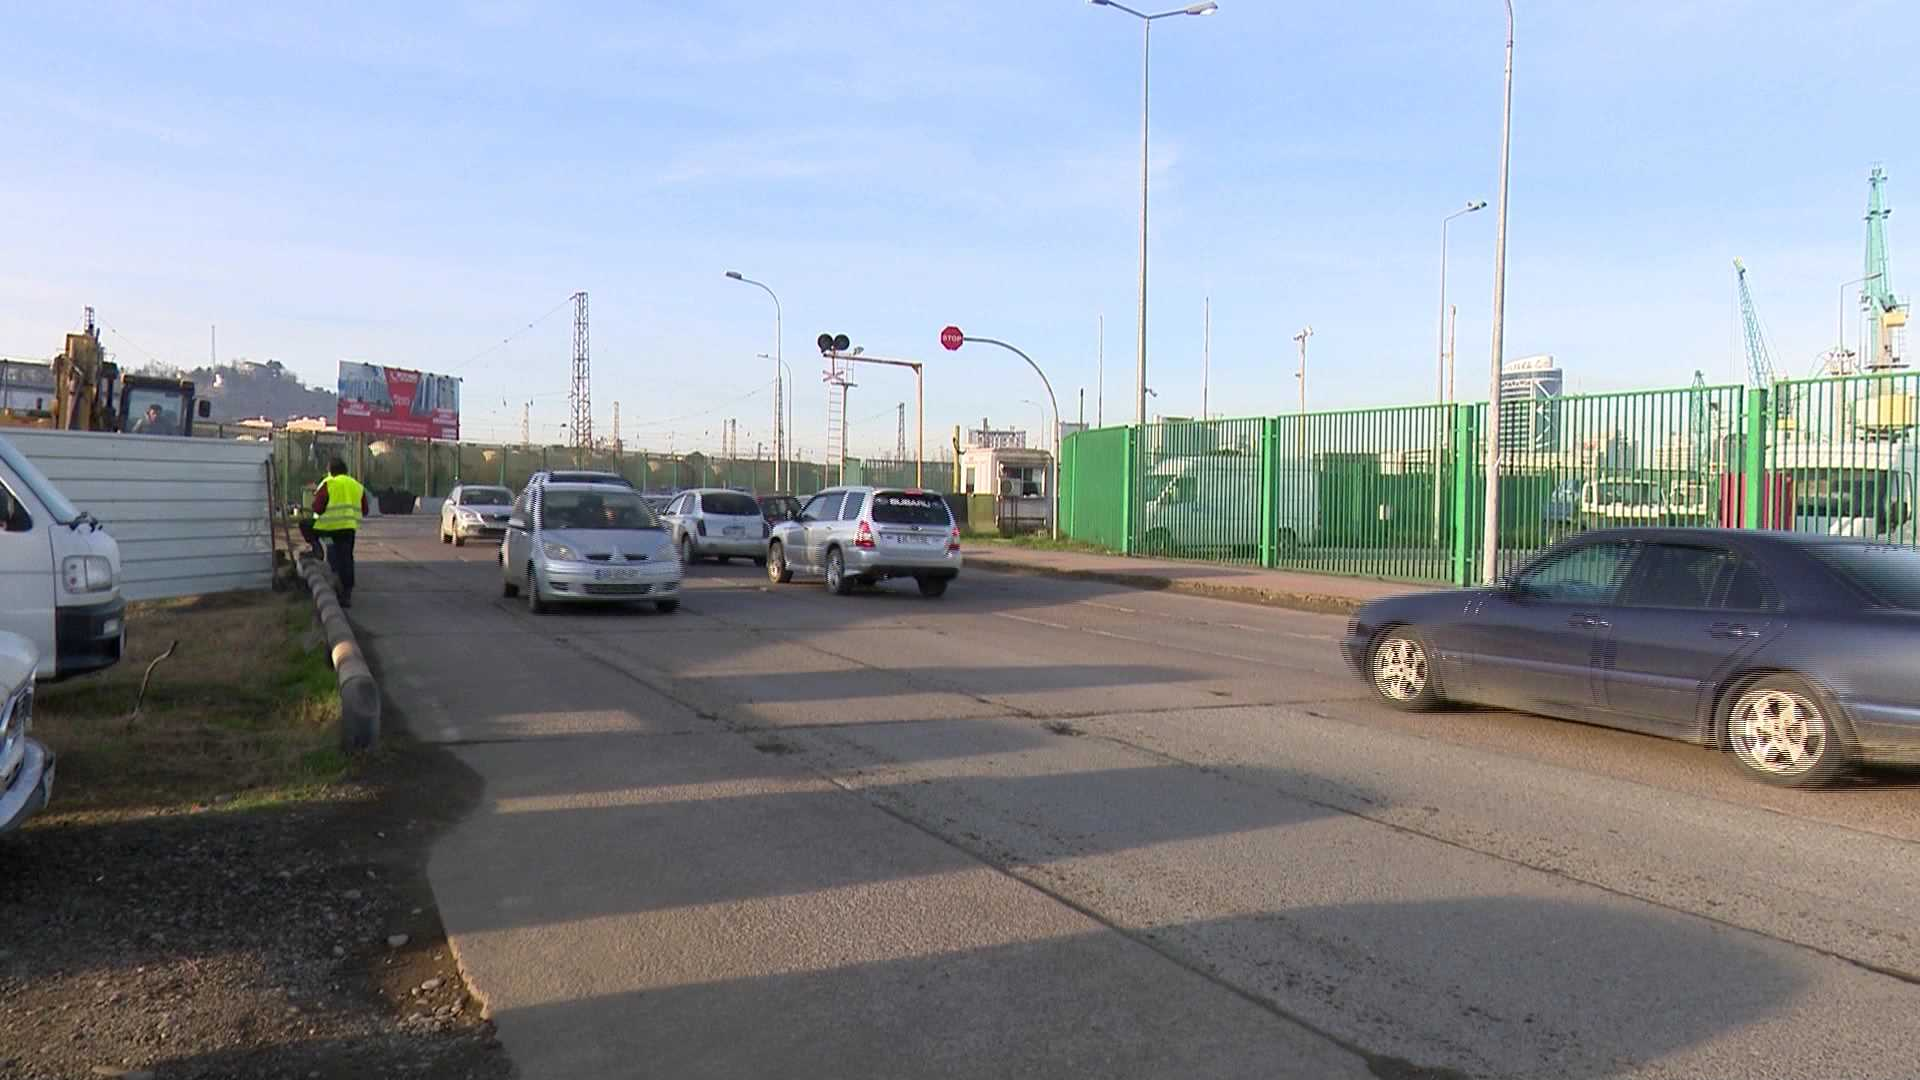 Restrictions on motor movement due to the construction of the overpass